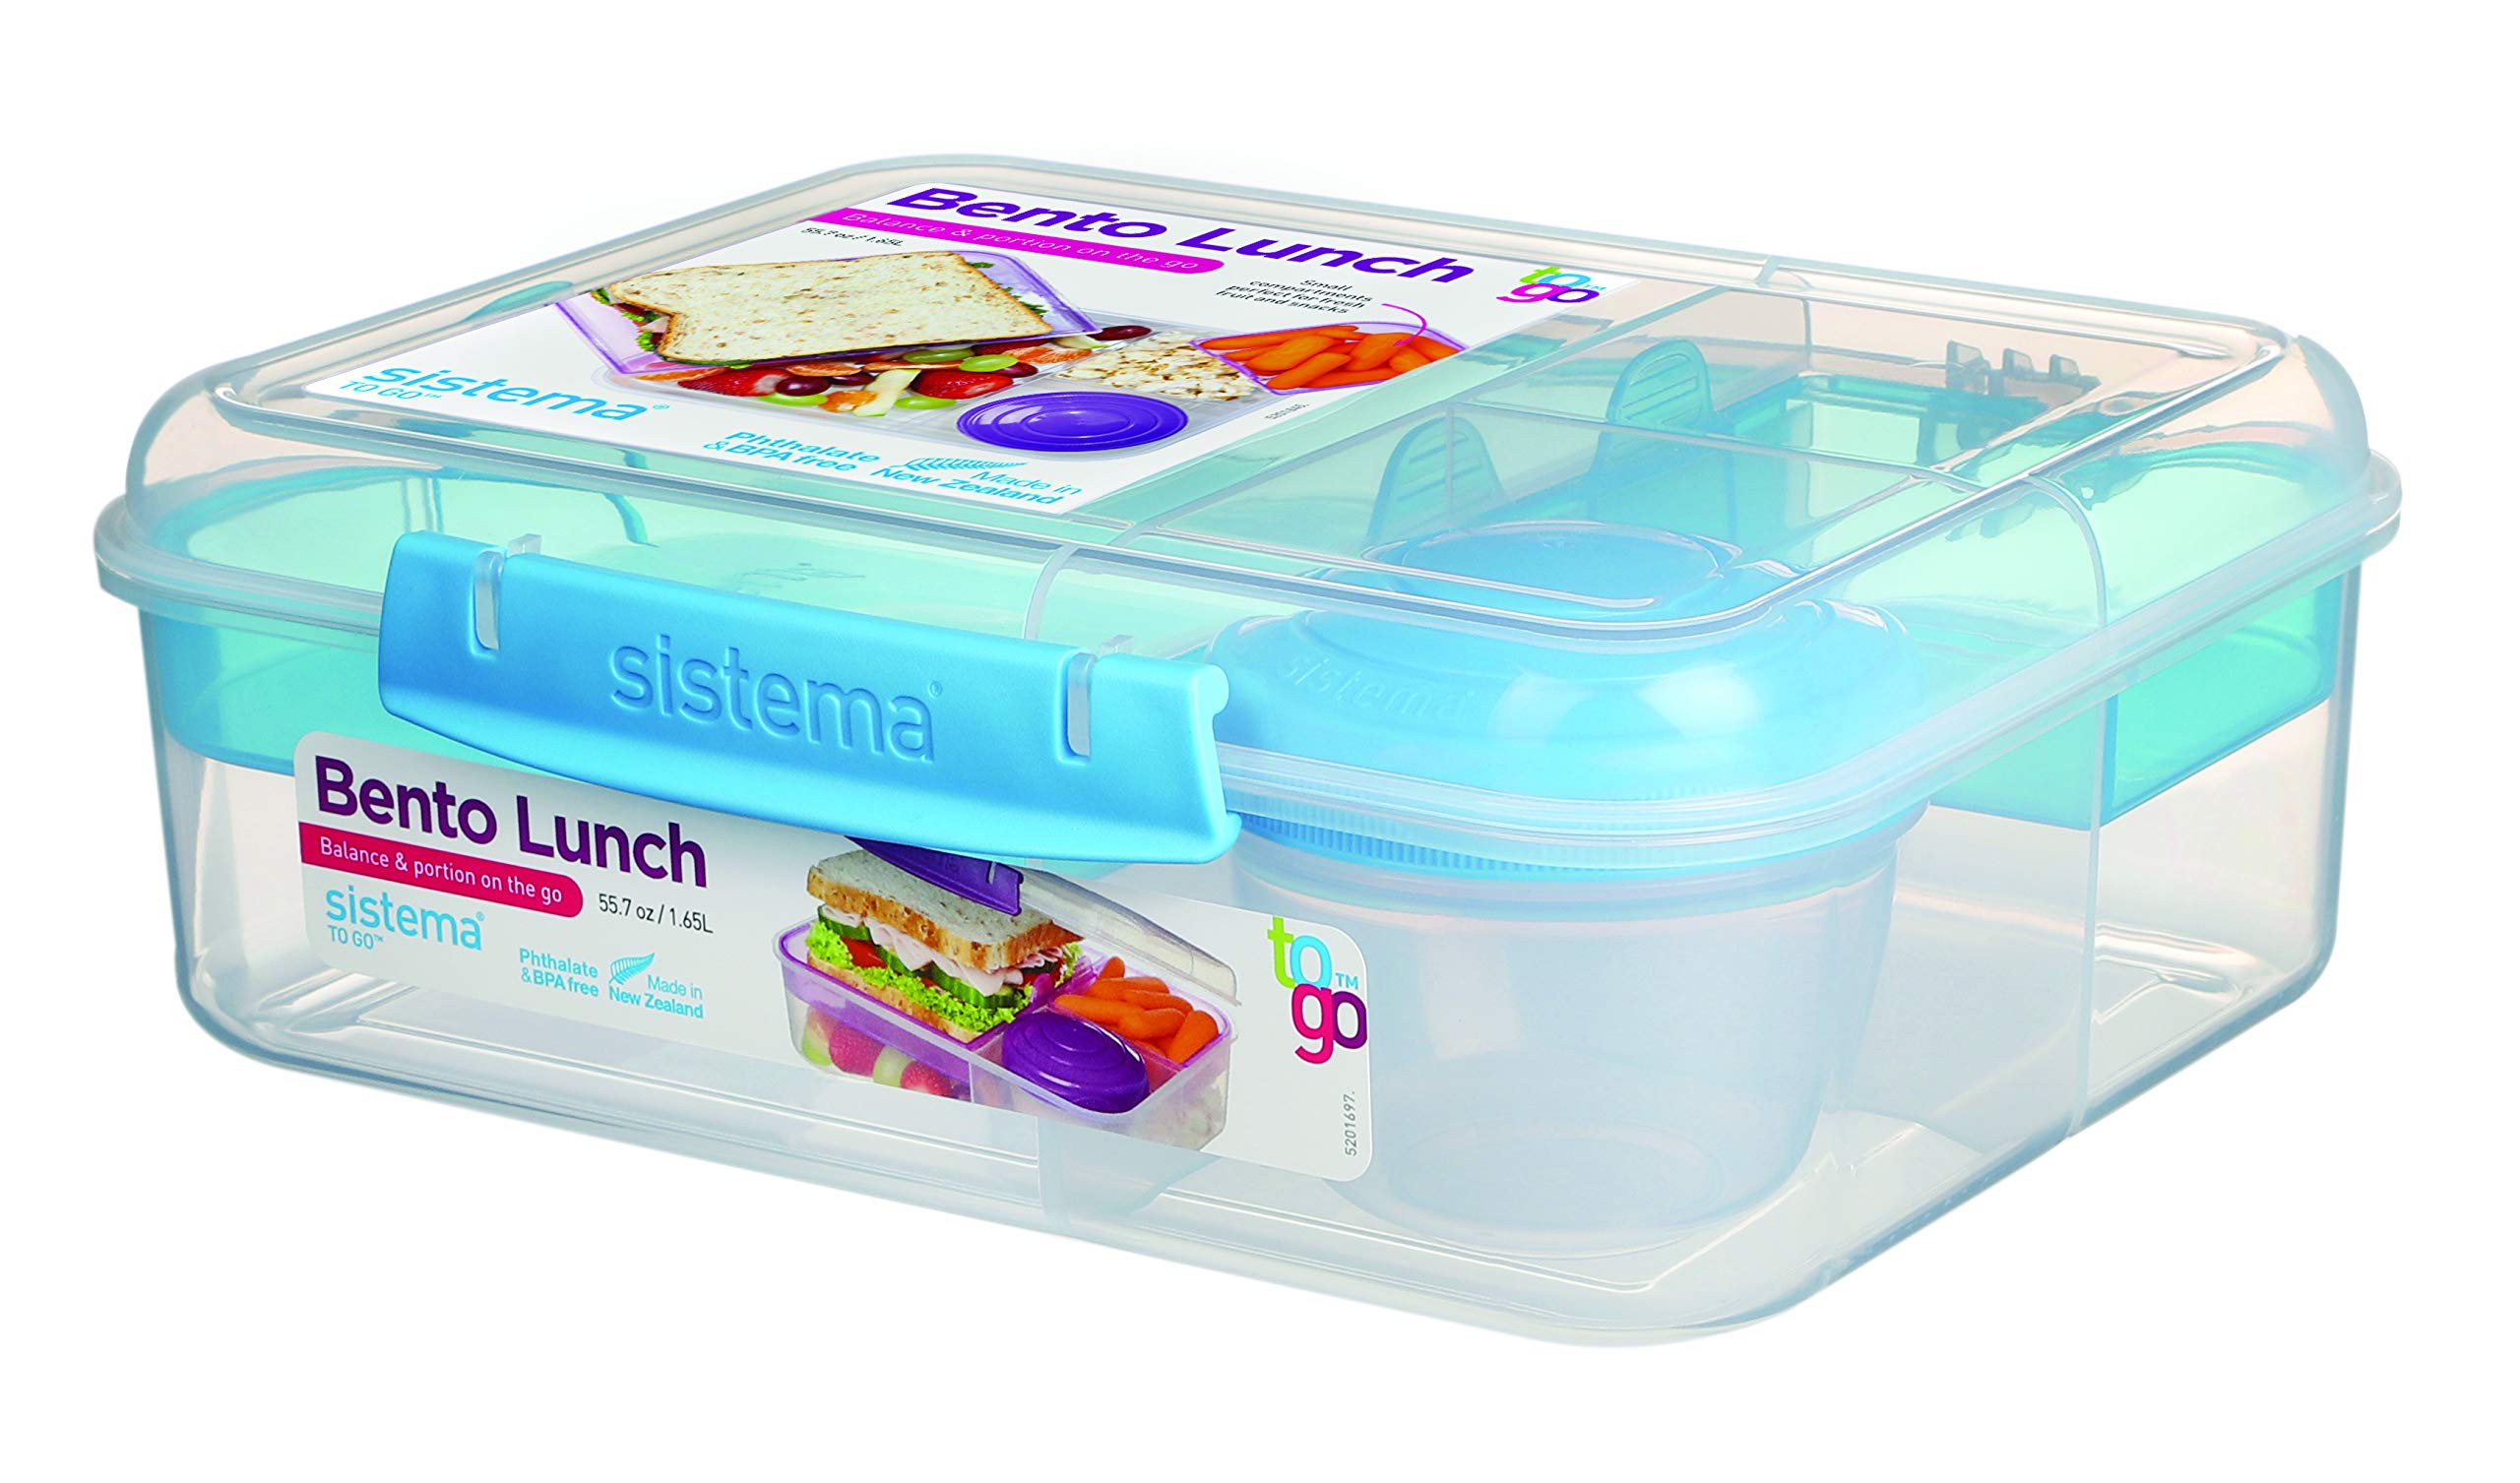 Sistema Bento Box TO GO | Lunch Box with Yoghurt/Fruit Pot | 1.65 L | BPA-Free | Assorted Colours (Varies by Pack) | 1 Count